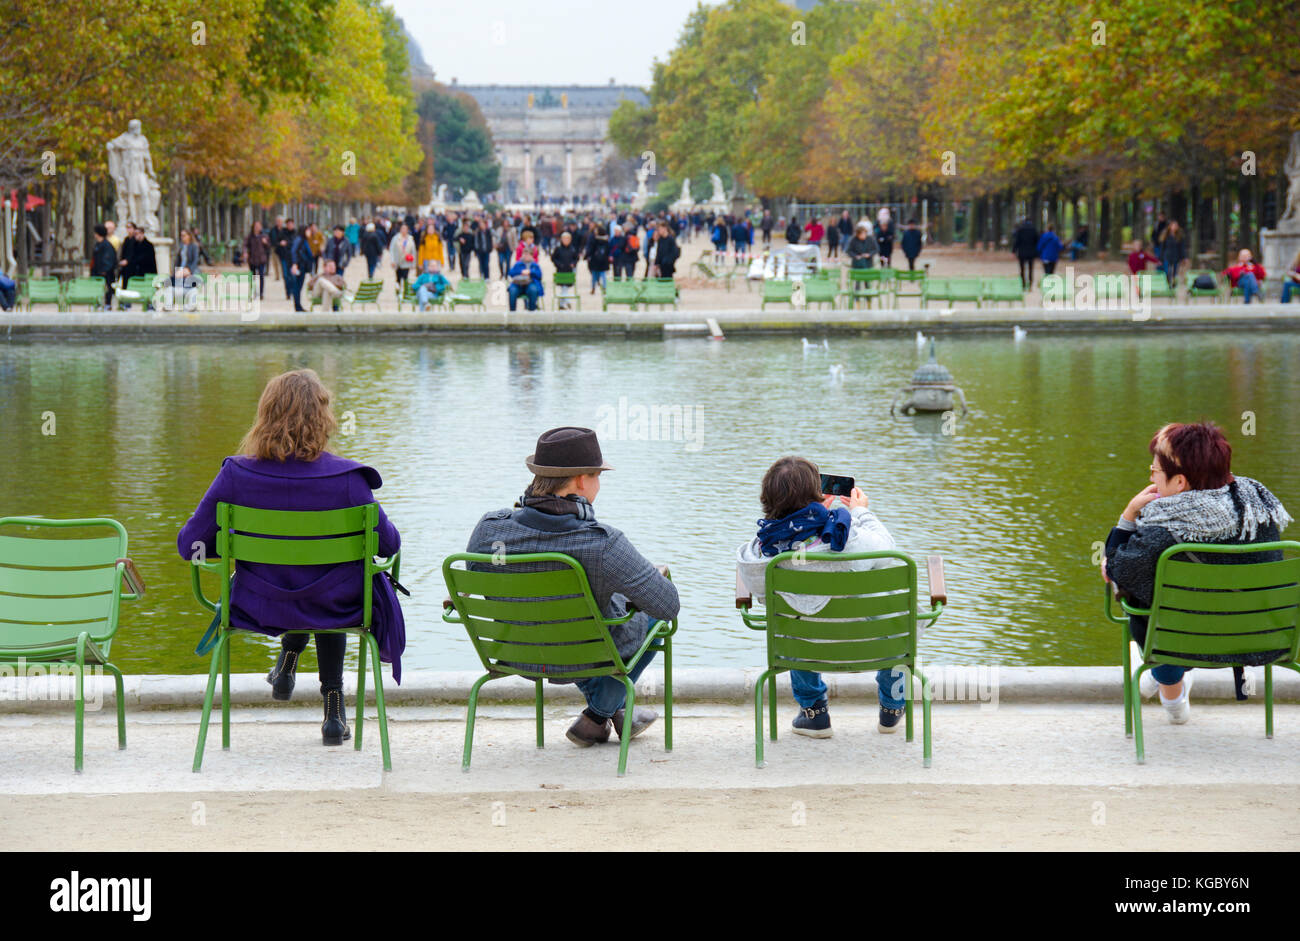 Paris, France. Jardin des Tuileries. Autumn - people sitting around the Bassin Octagonal (pond) - Stock Image